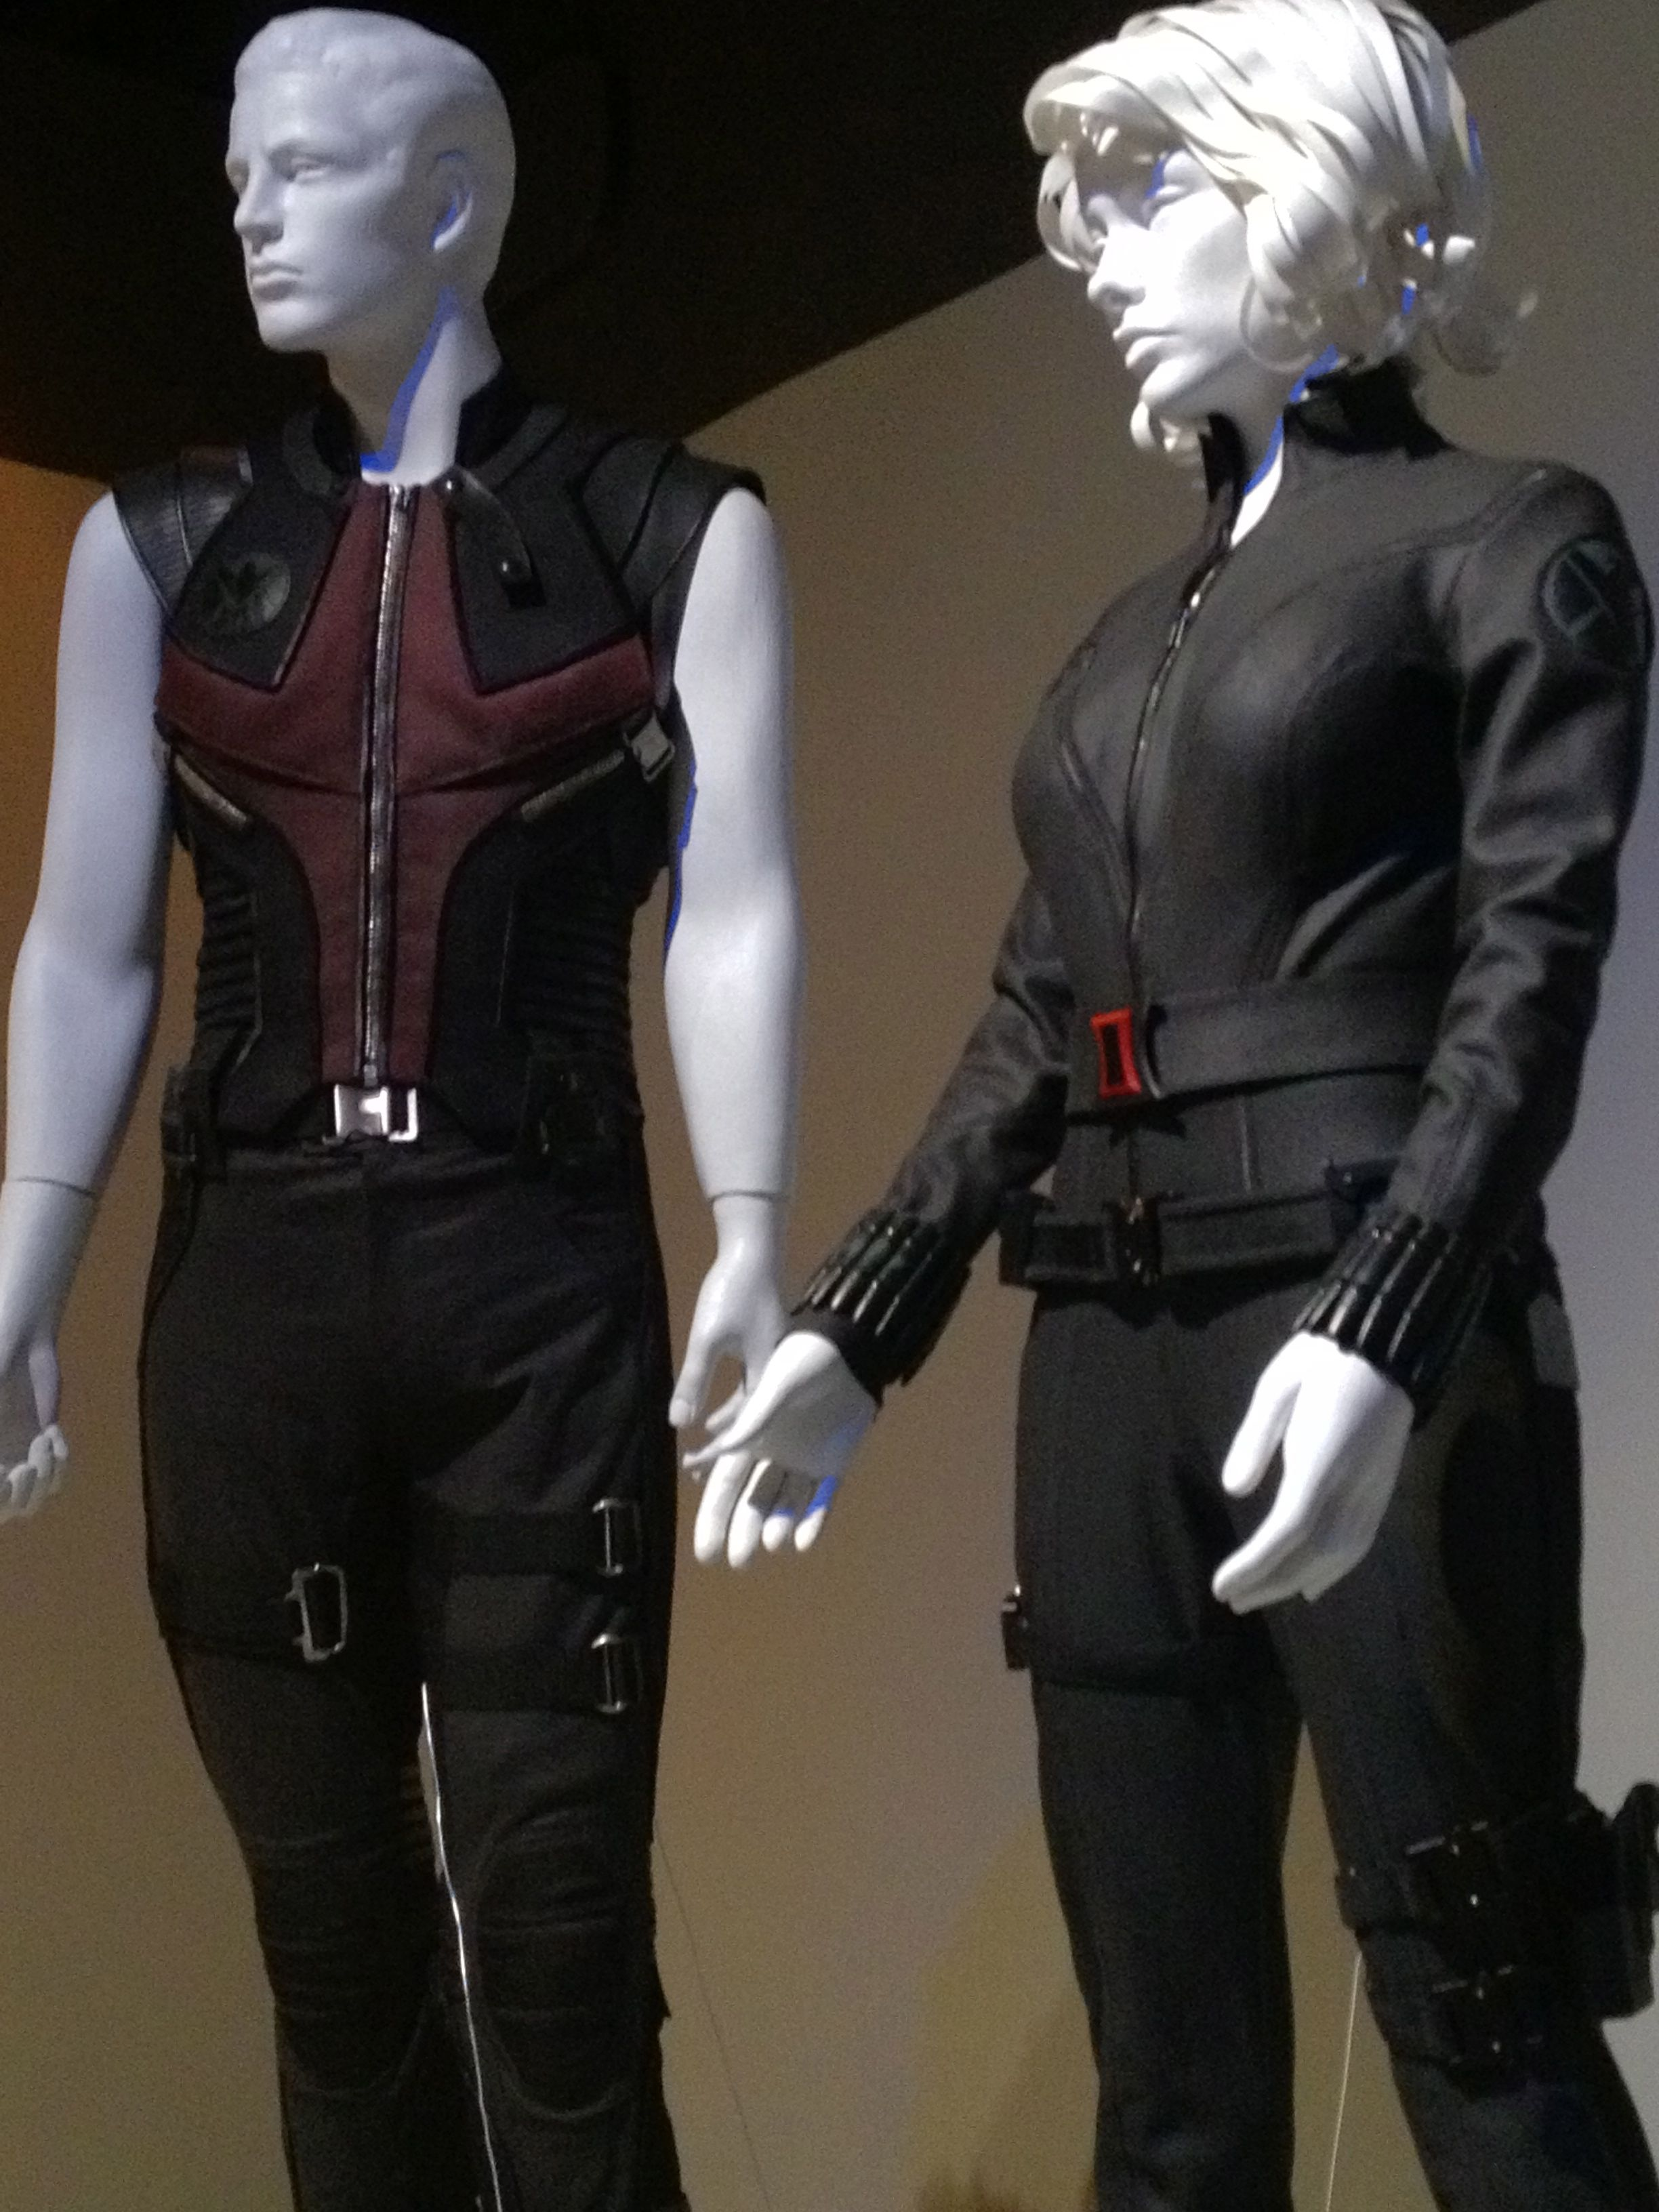 Avengers Hawkeye and Black Widow  sc 1 st  Pinterest & Avengers: Hawkeye and Black Widow | Hawkeye Cosplay reference ...